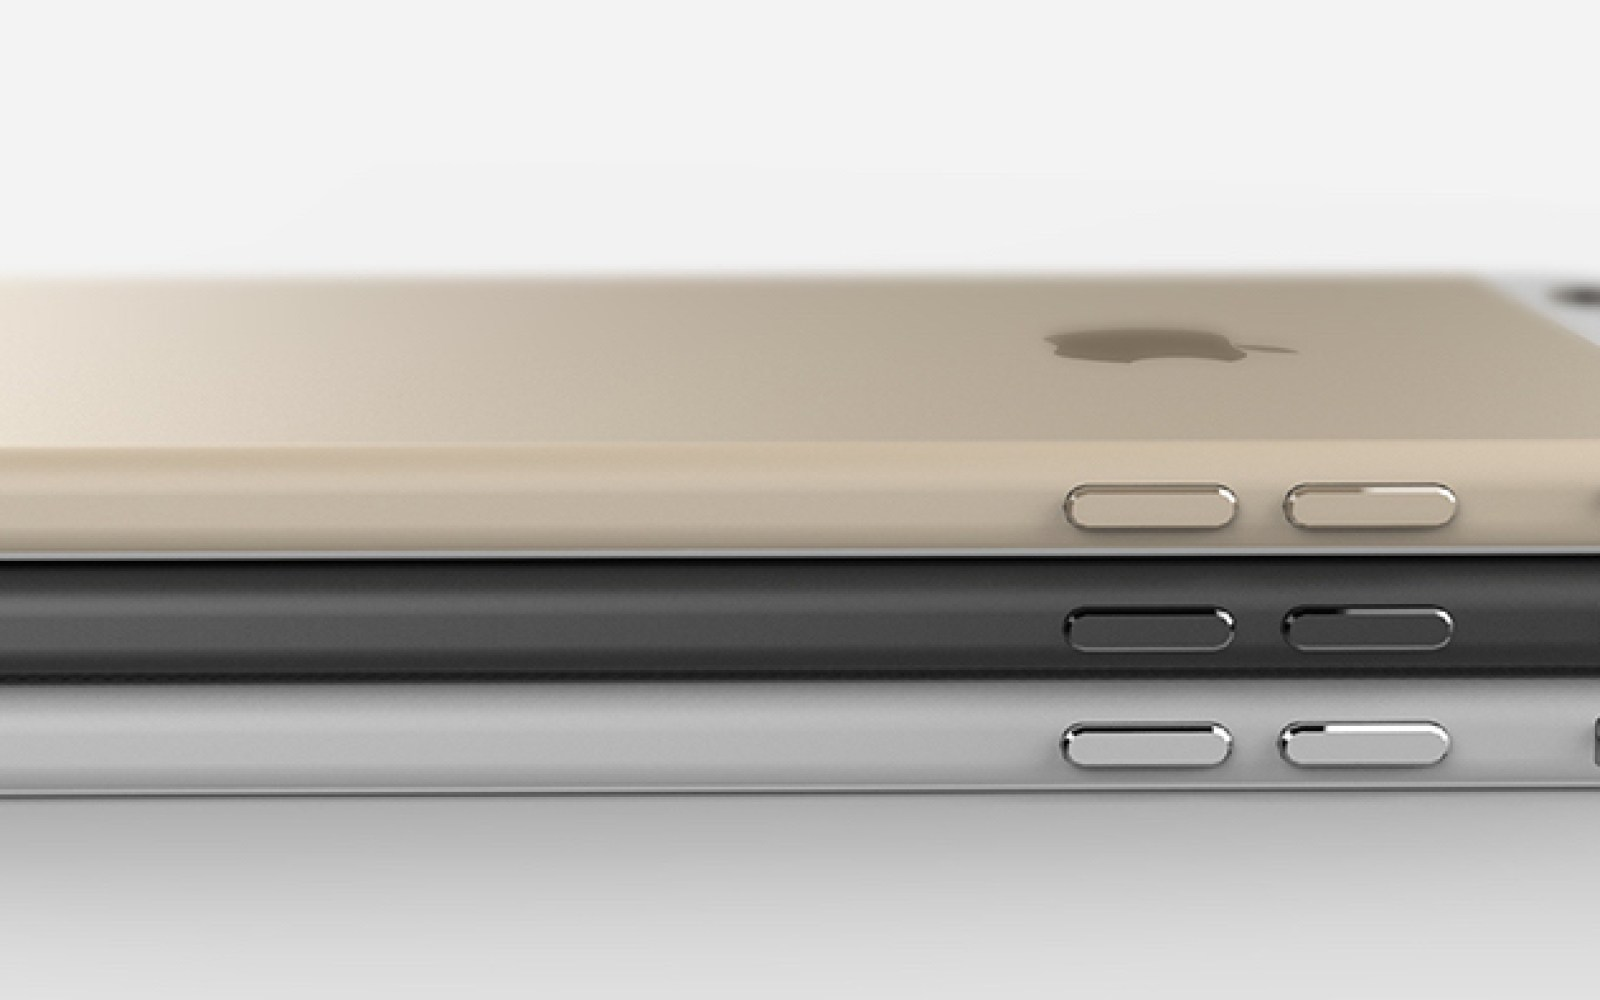 Latest iPhone 6 renders compare potential gold, space gray, and silver colors [Gallery]